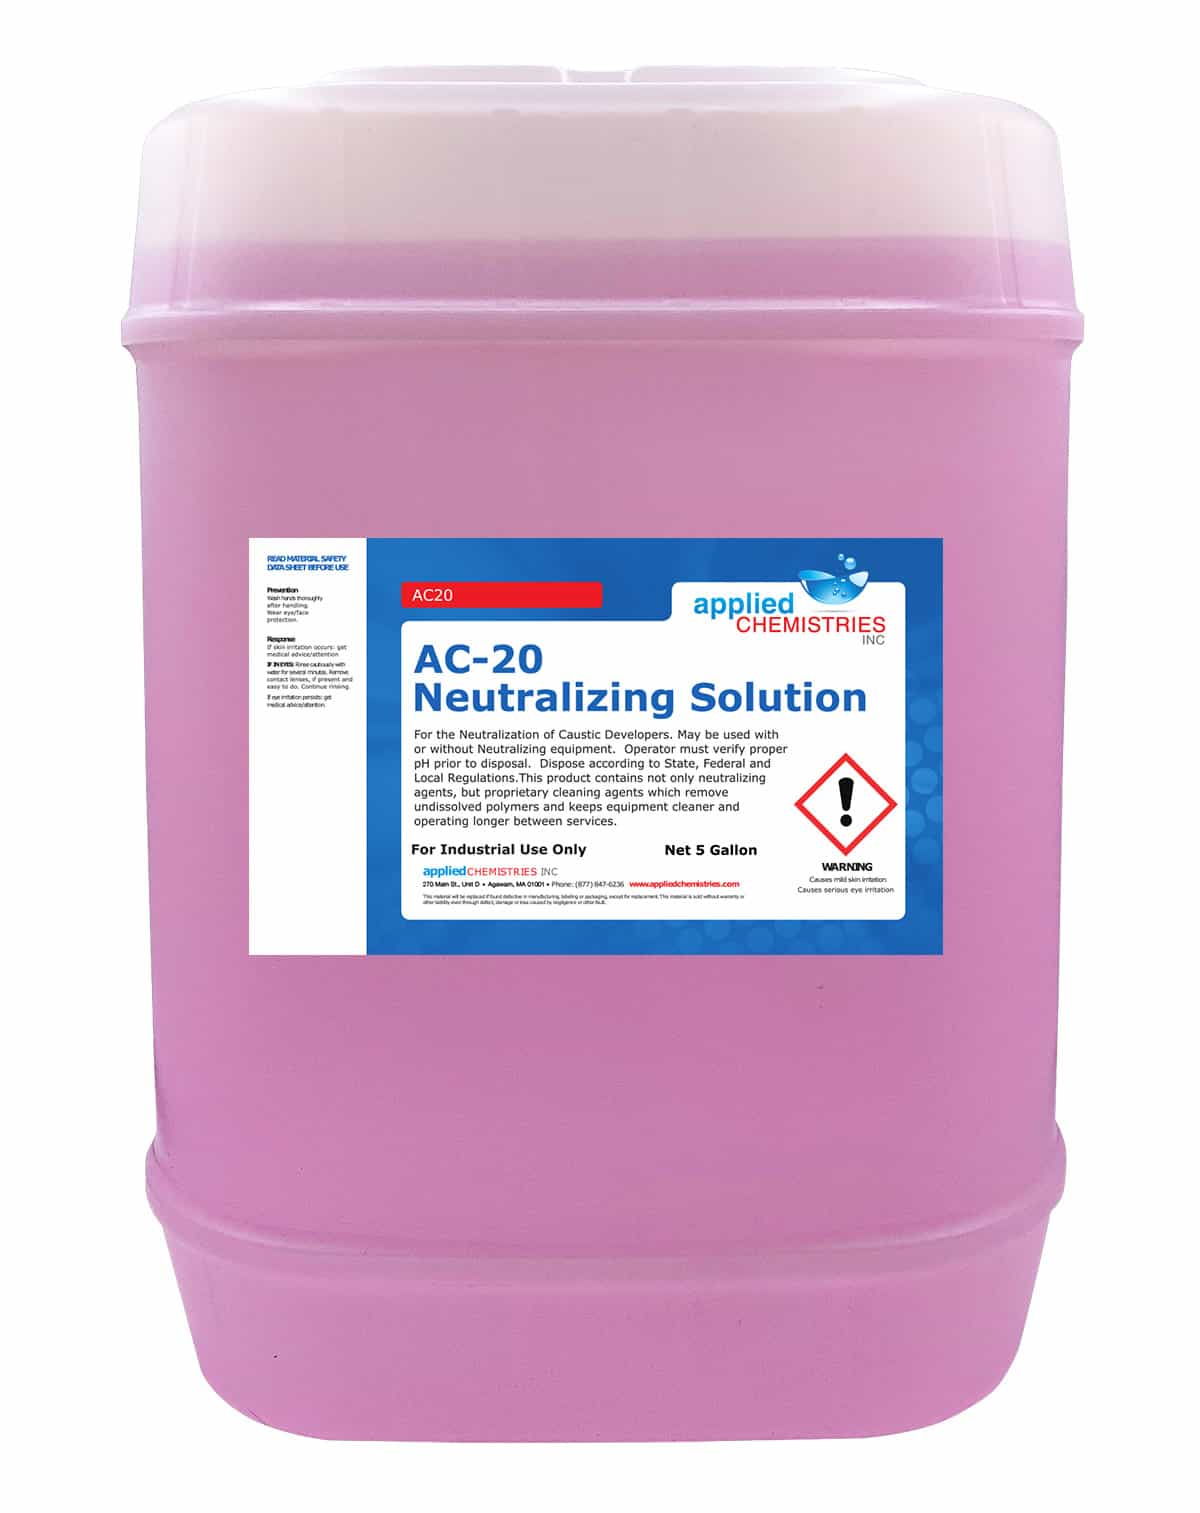 Neutralizing Solutions AC-20